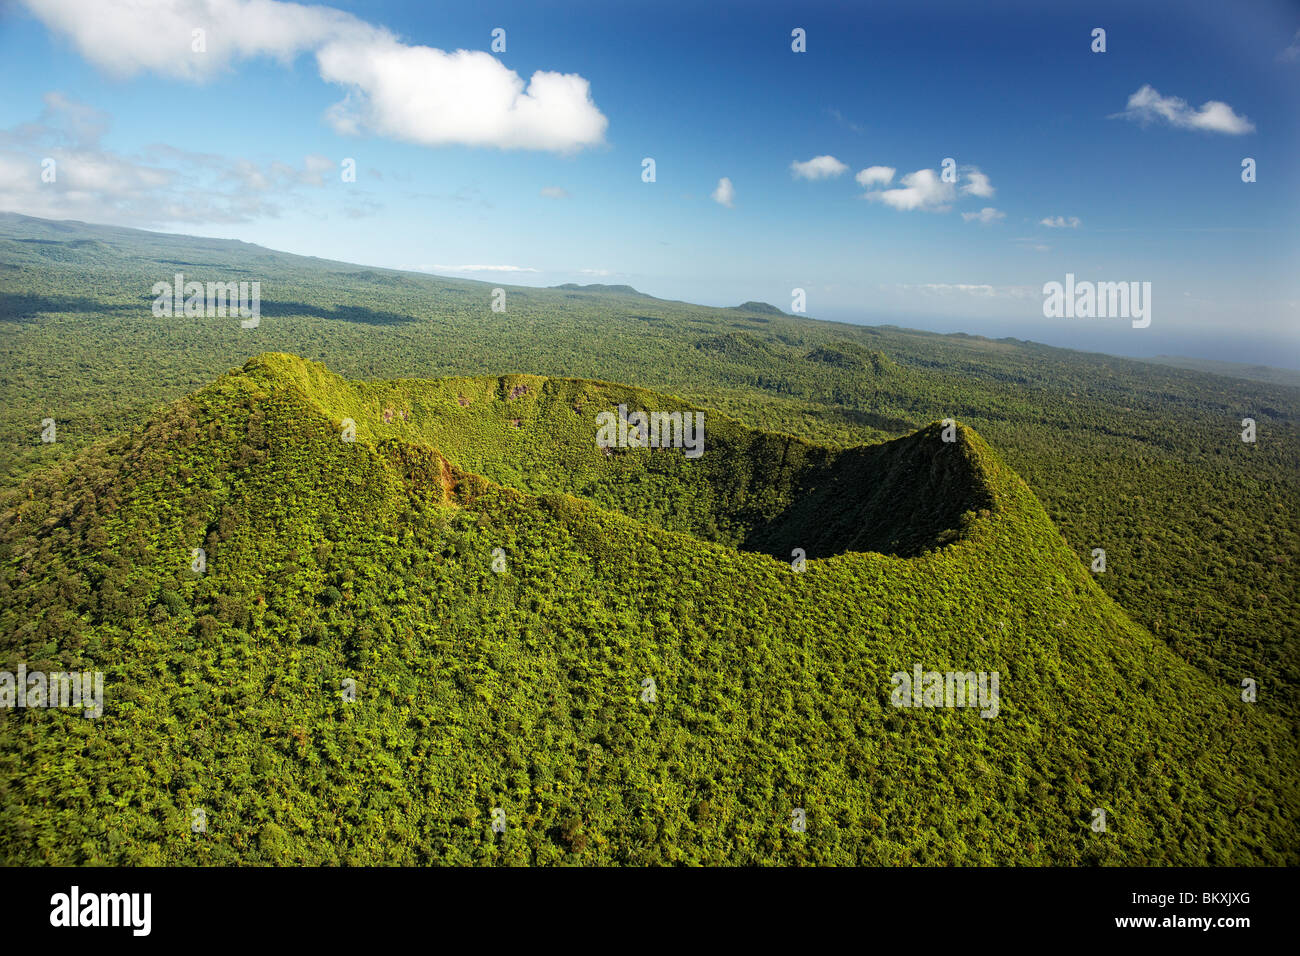 Aerial view of Mt To'iave'a, Savai'ii, Samoa - Stock Image